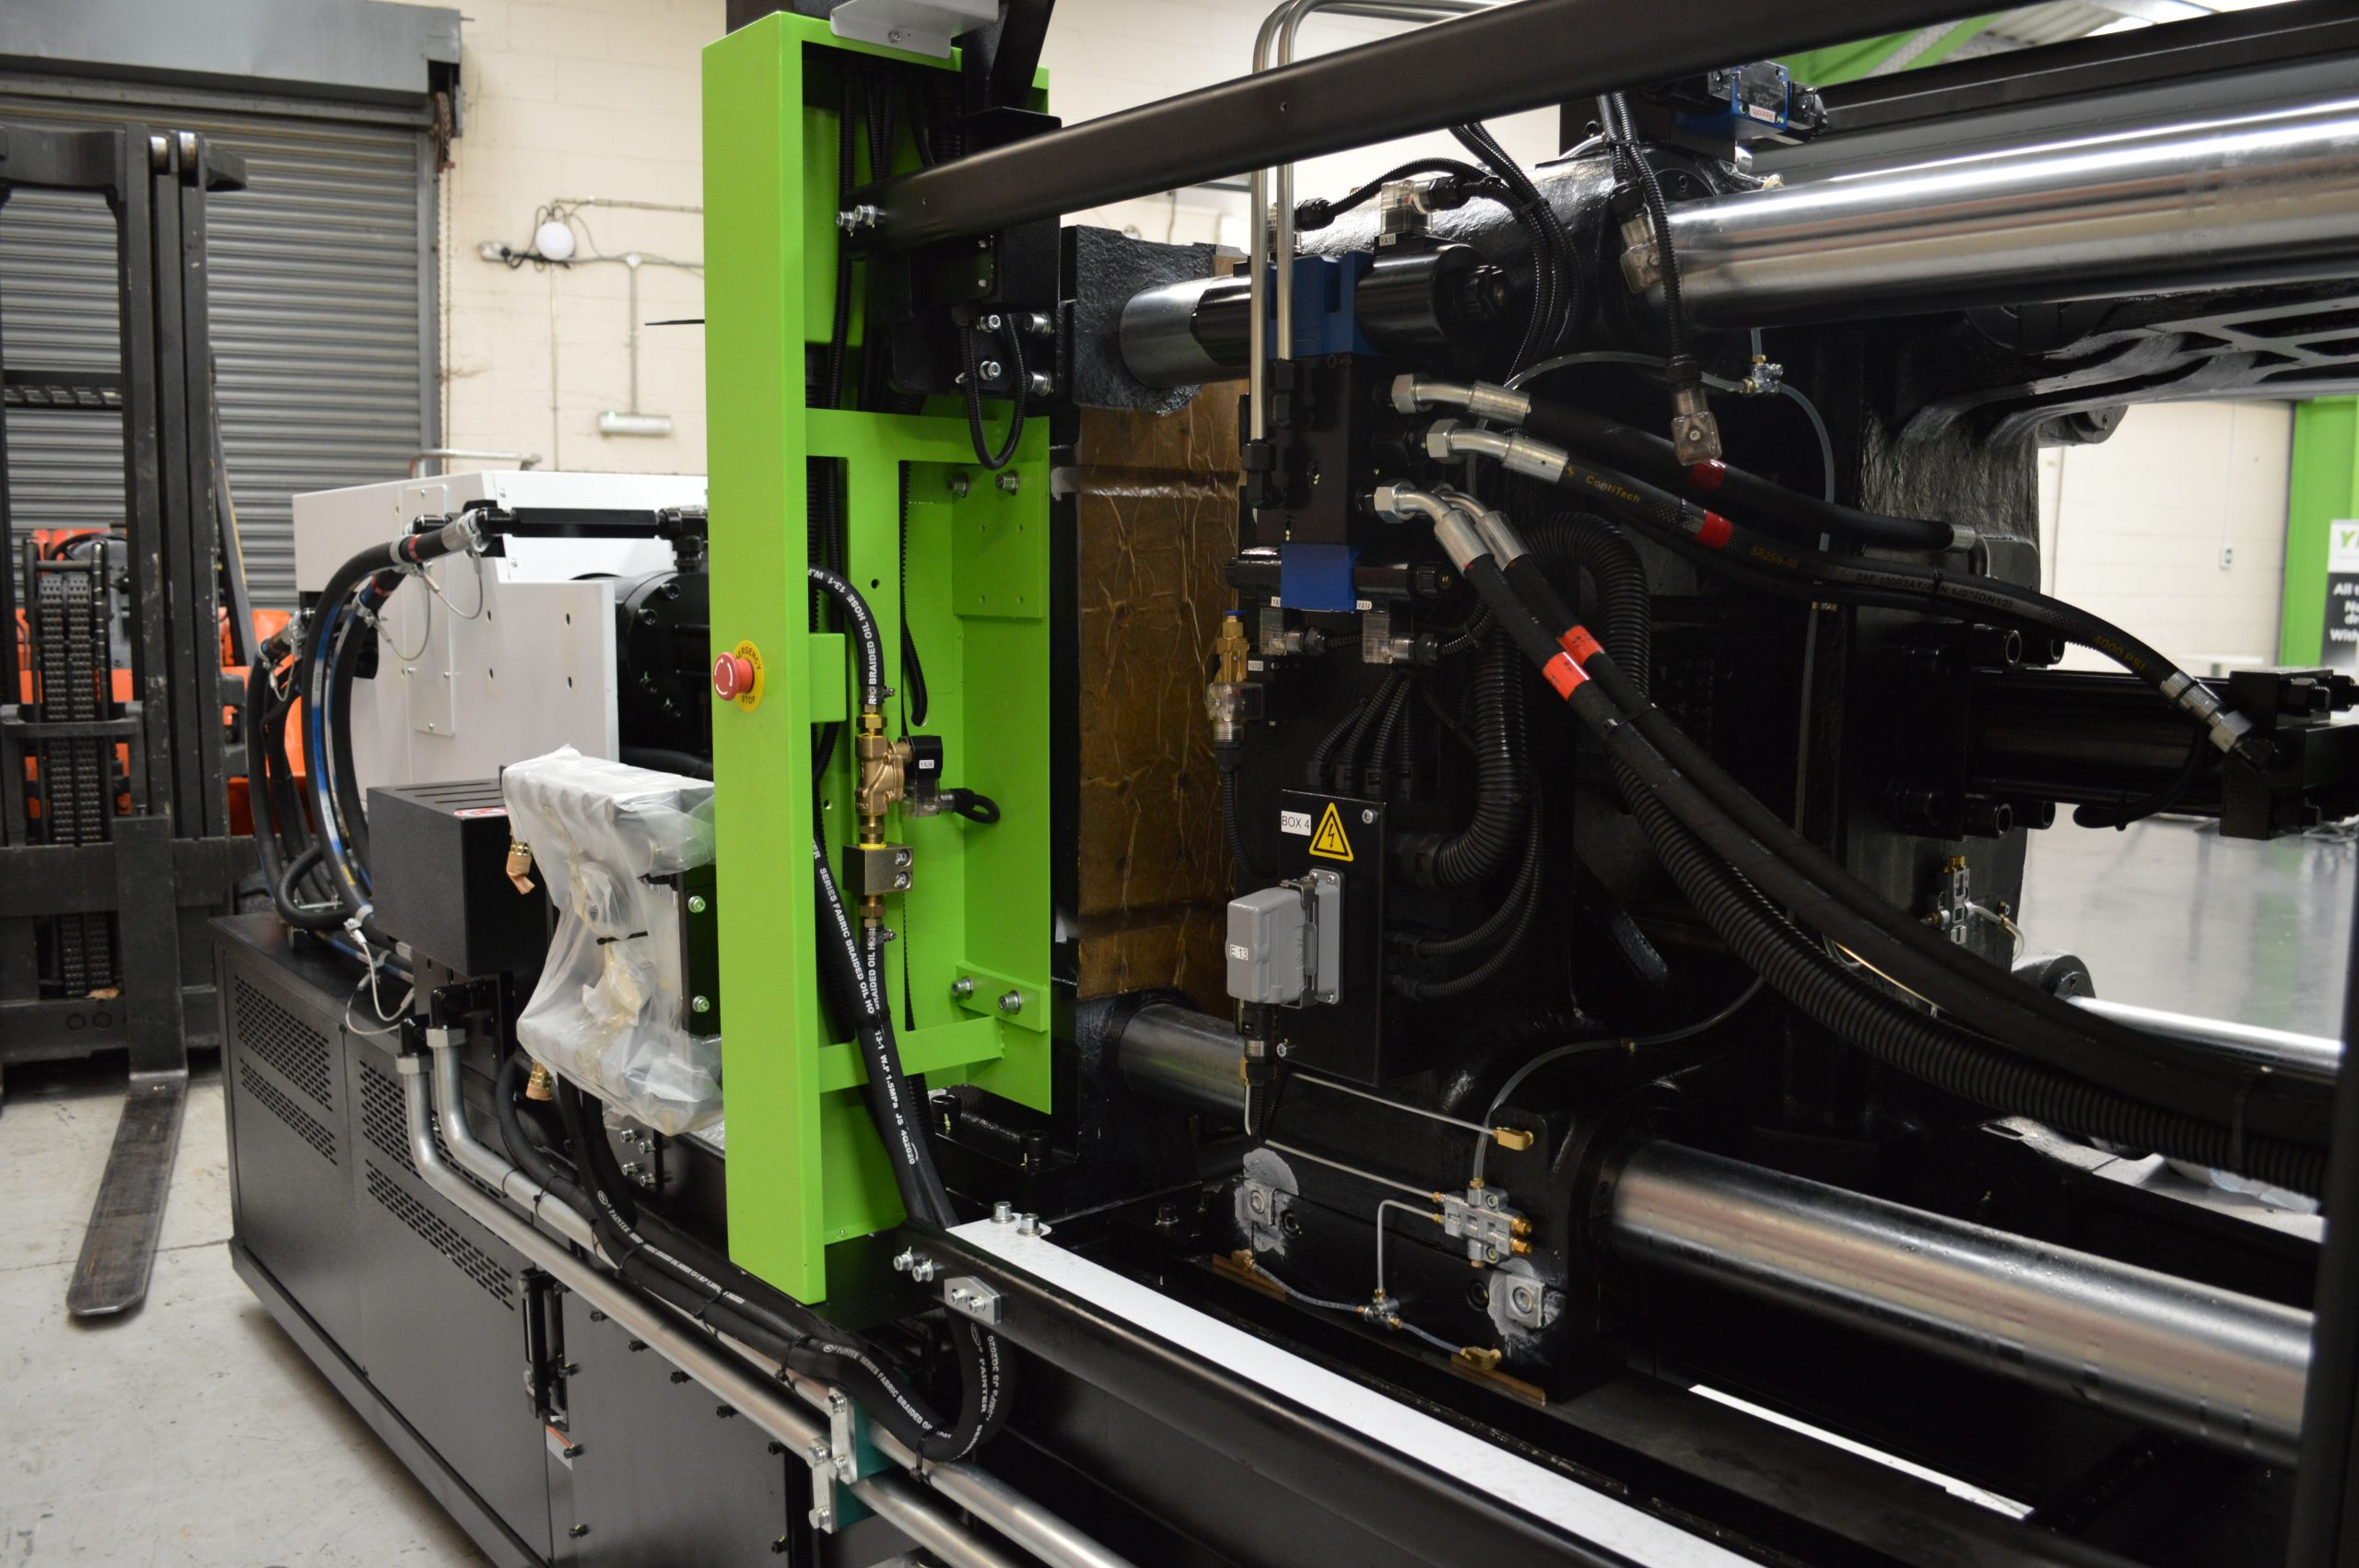 A5 fixed platen with guarding